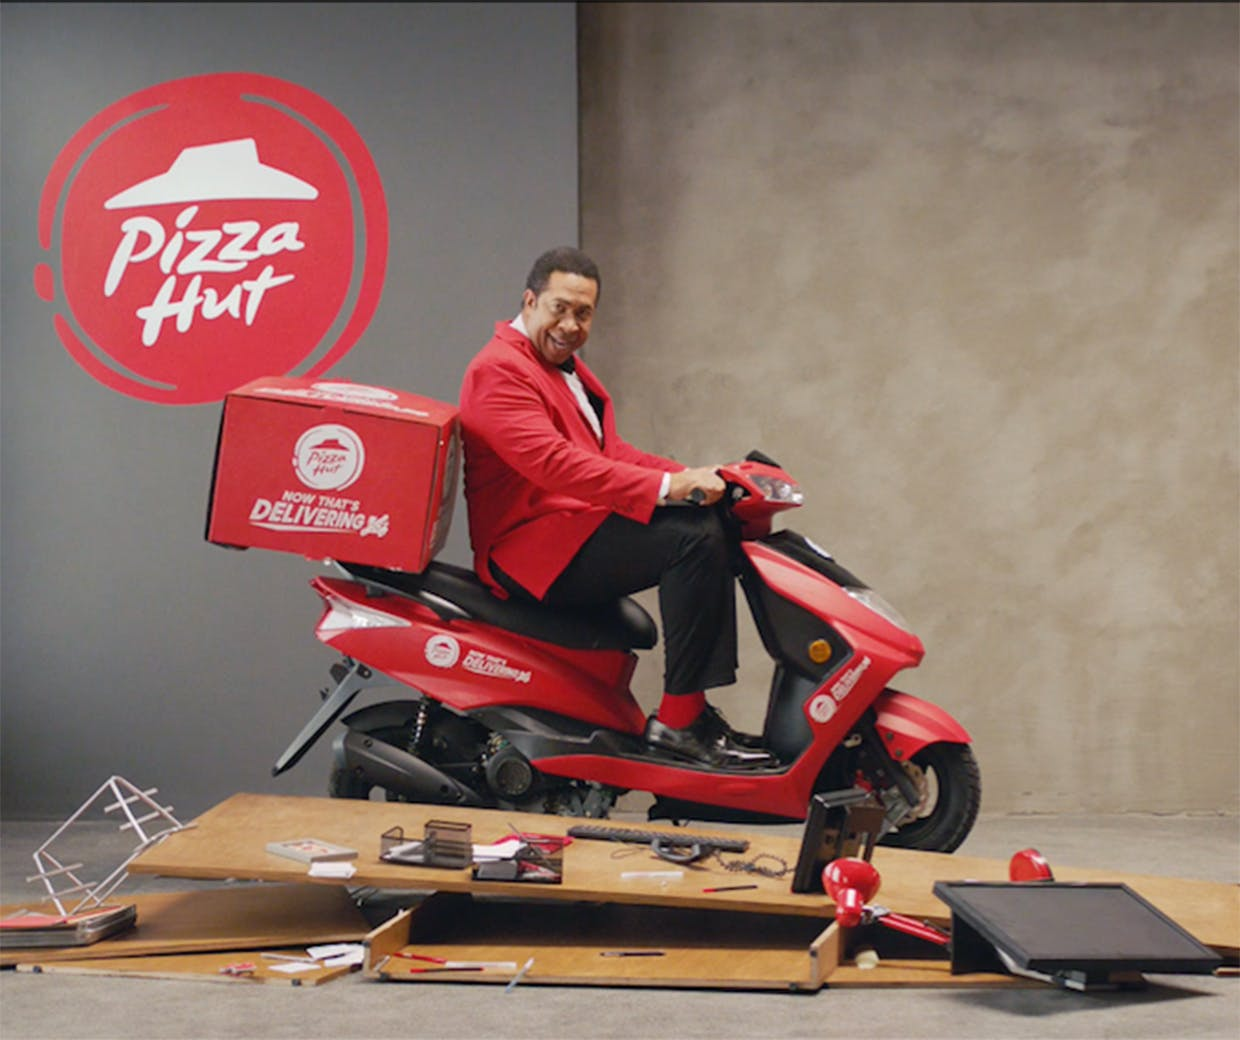 izza Hut Delivery featured image